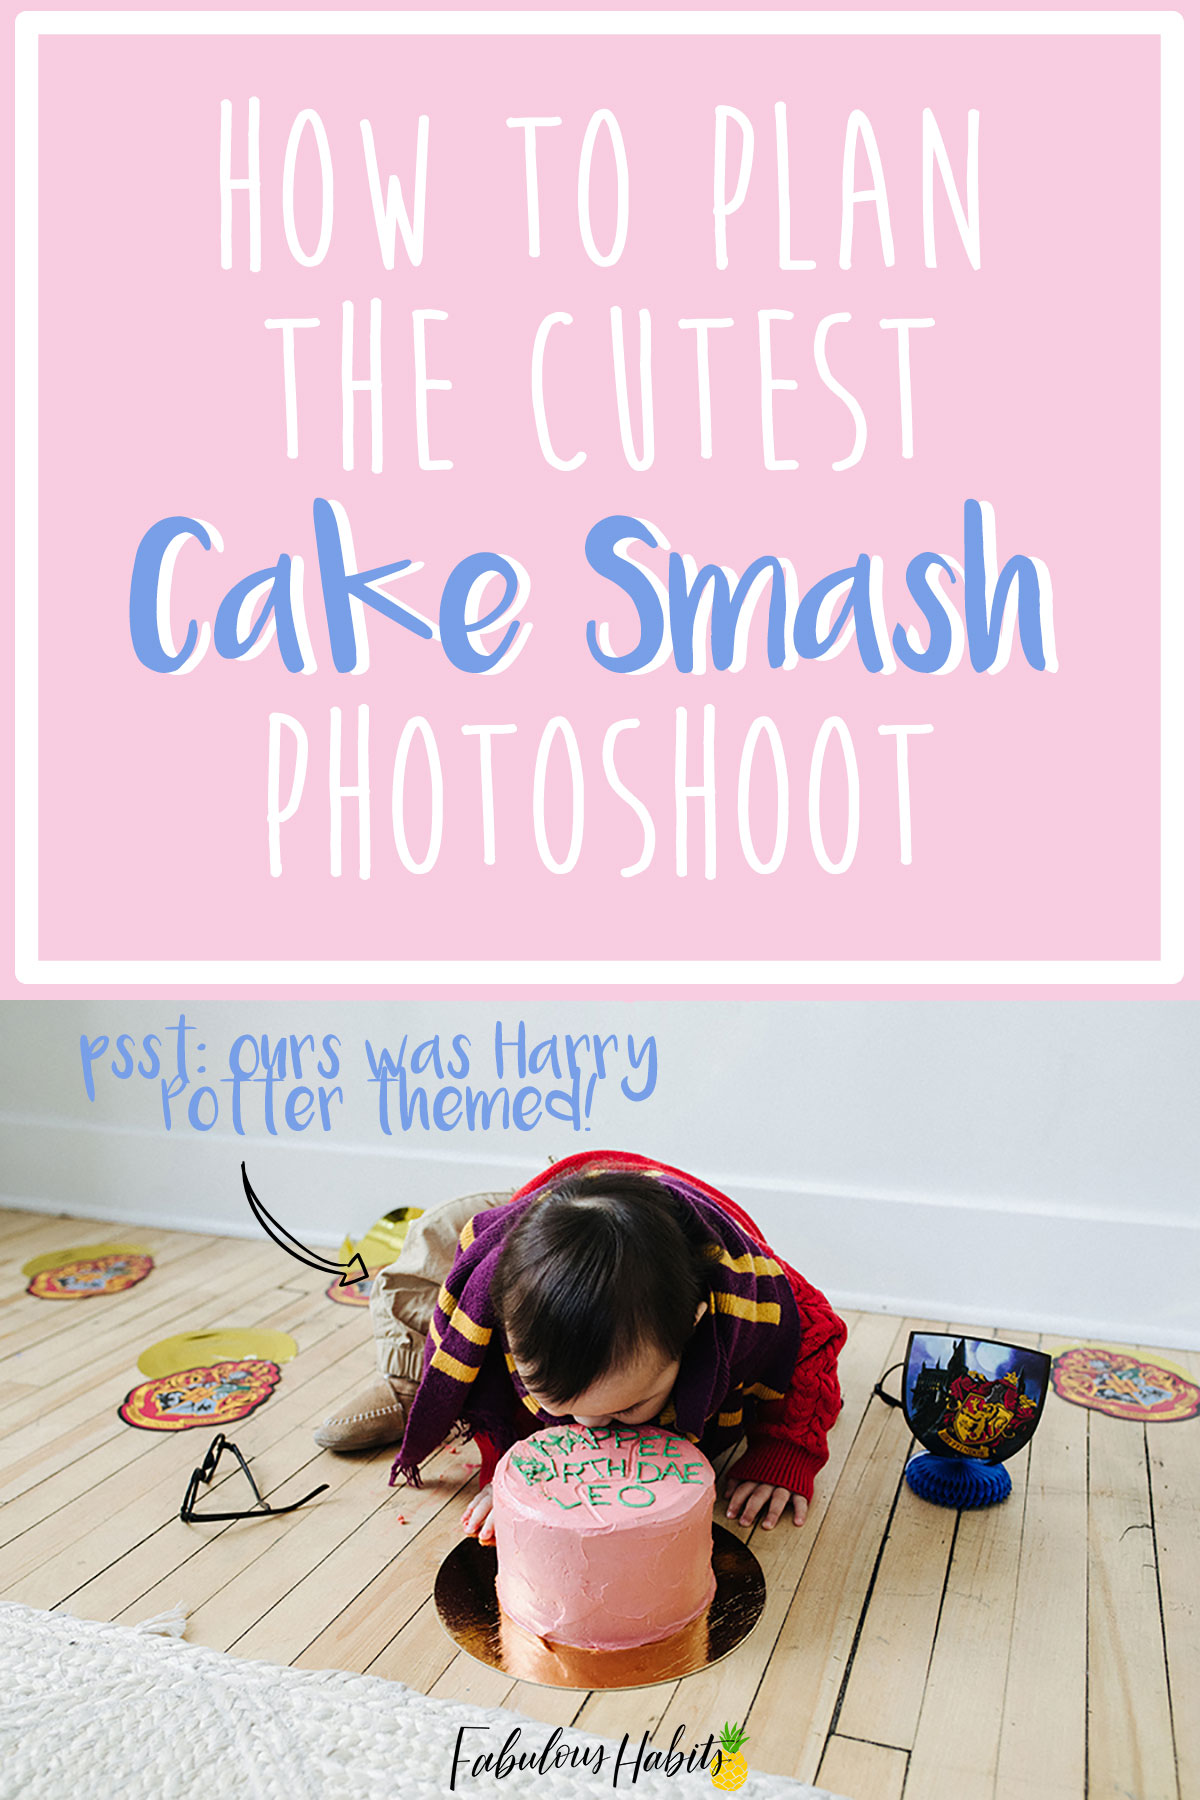 Organize your very own Harry Potter-inspired Cake Smash photoshoot with these fun tips. Come on now, it's time to feel magical! #cakesmashphotoshoot